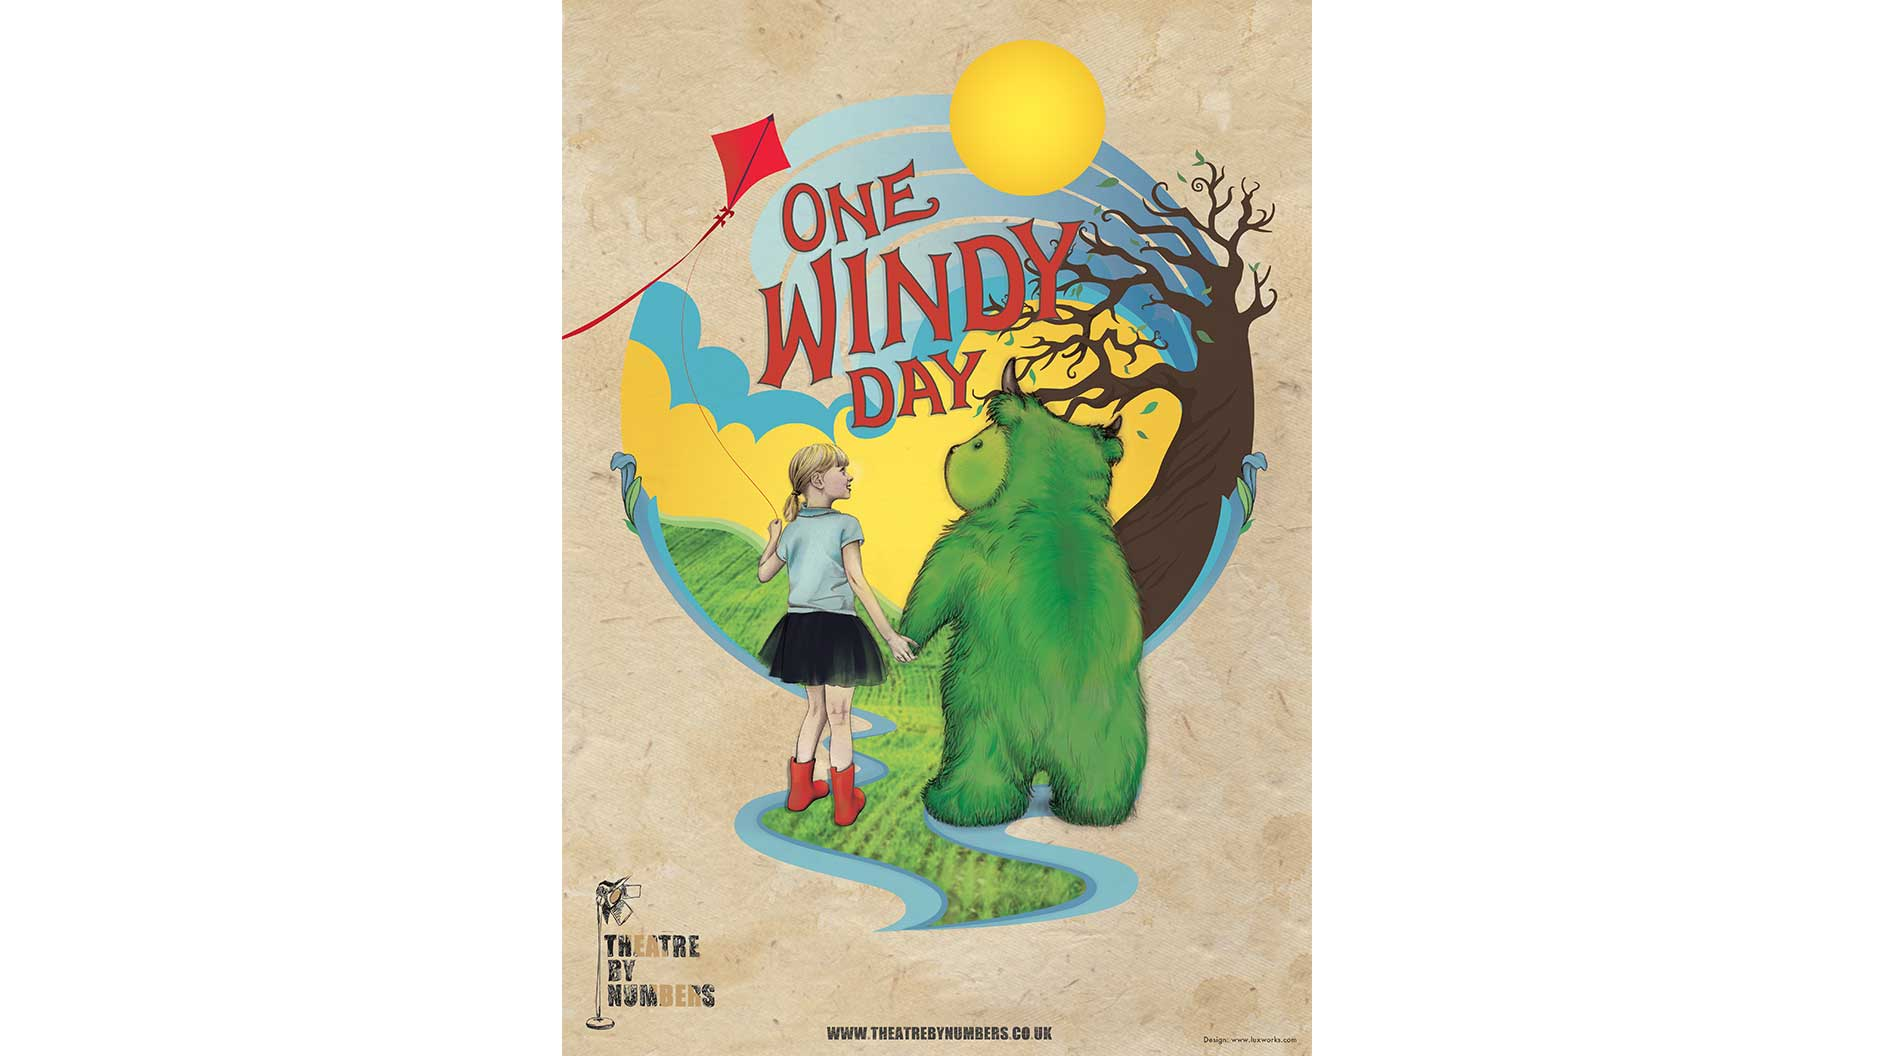 One Windy Day poster and flyer design